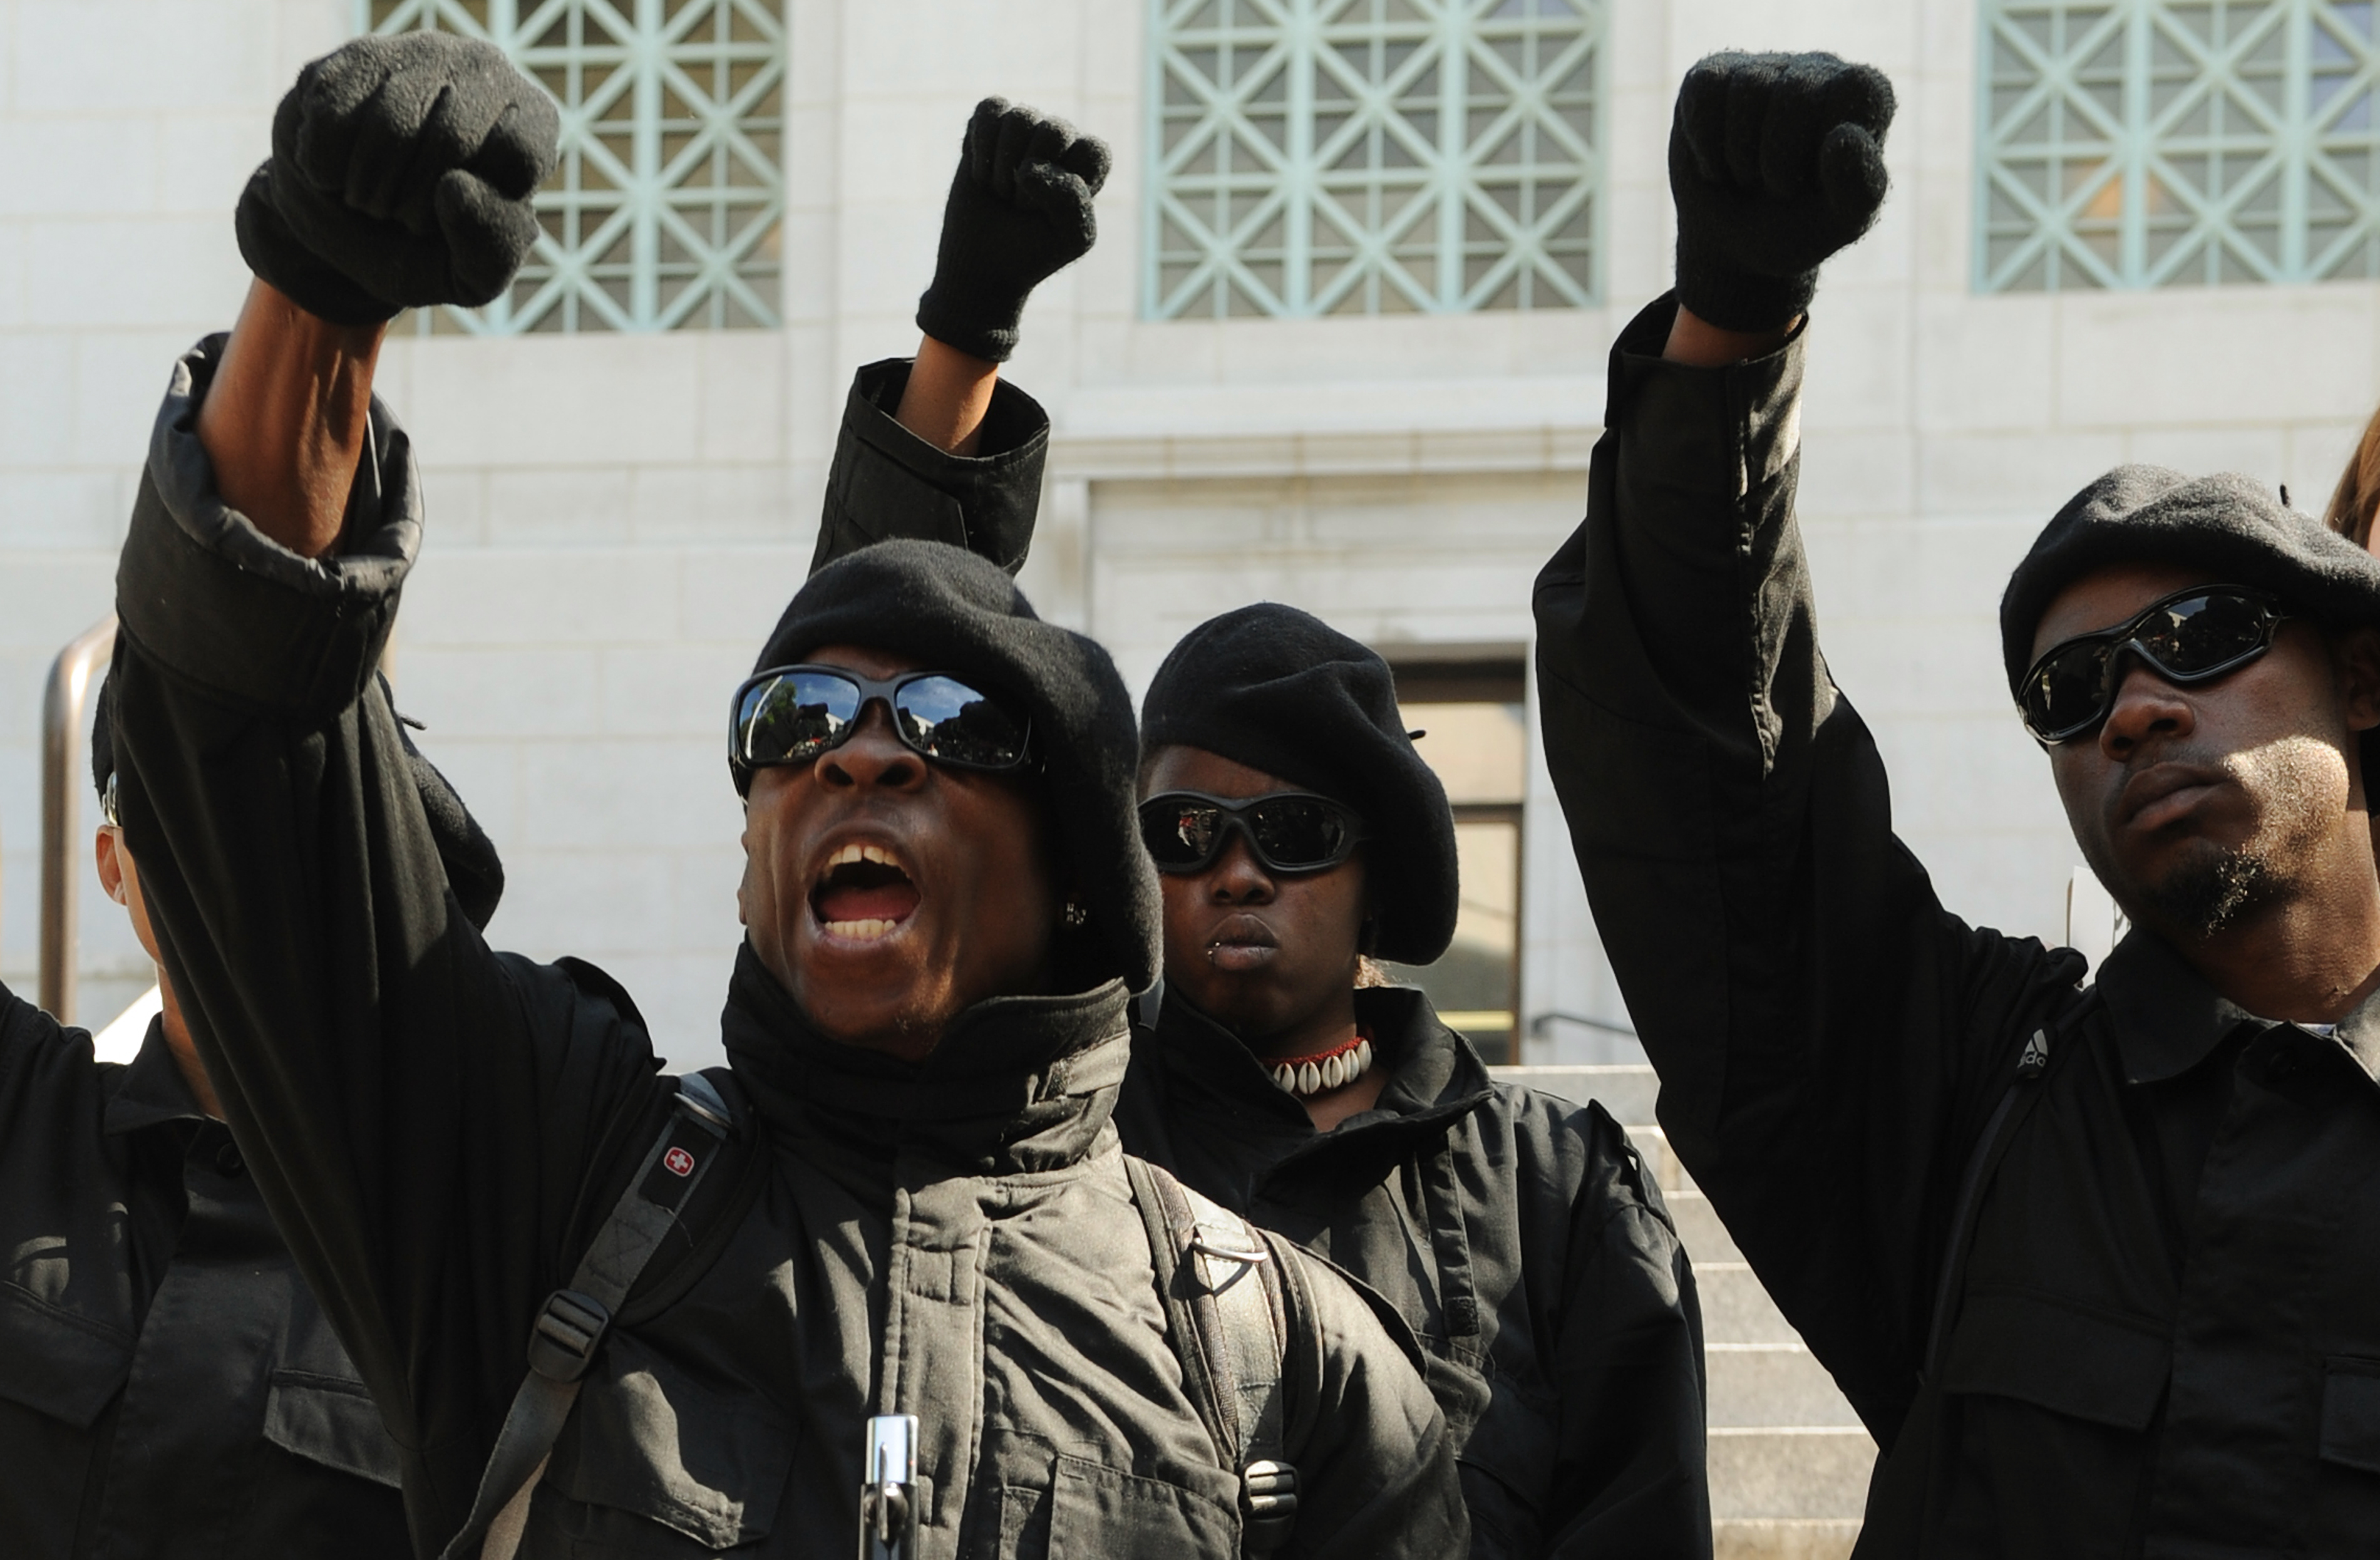 Members of the New Black Panther Party demonstrate in Los Angeles (Photo: MARK RALSTON/AFP/Getty Images)